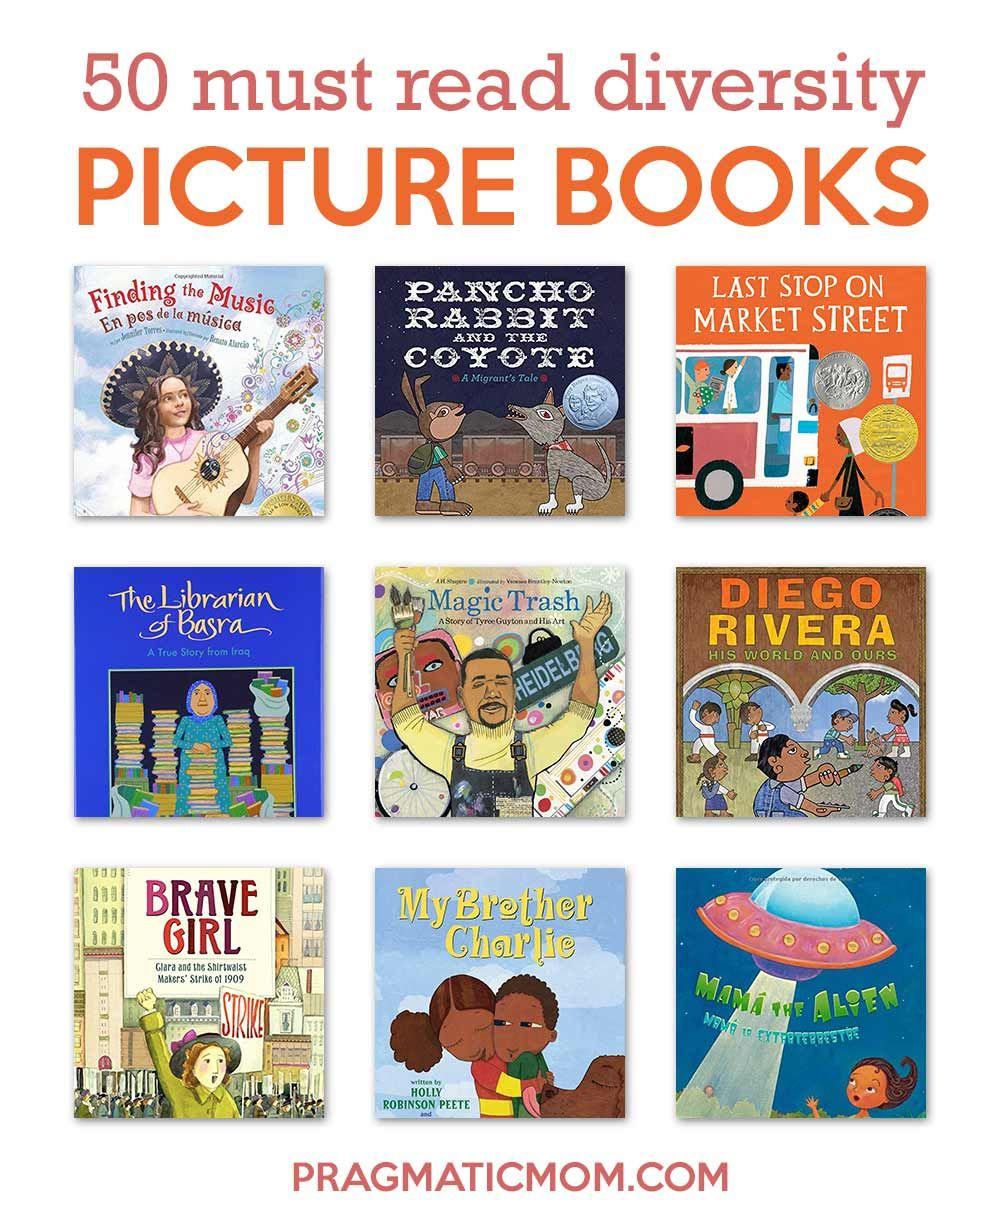 50 Must Read Diversity Picture Books Picture Book Easy Chapter Books Diverse Books Read children picture books online for